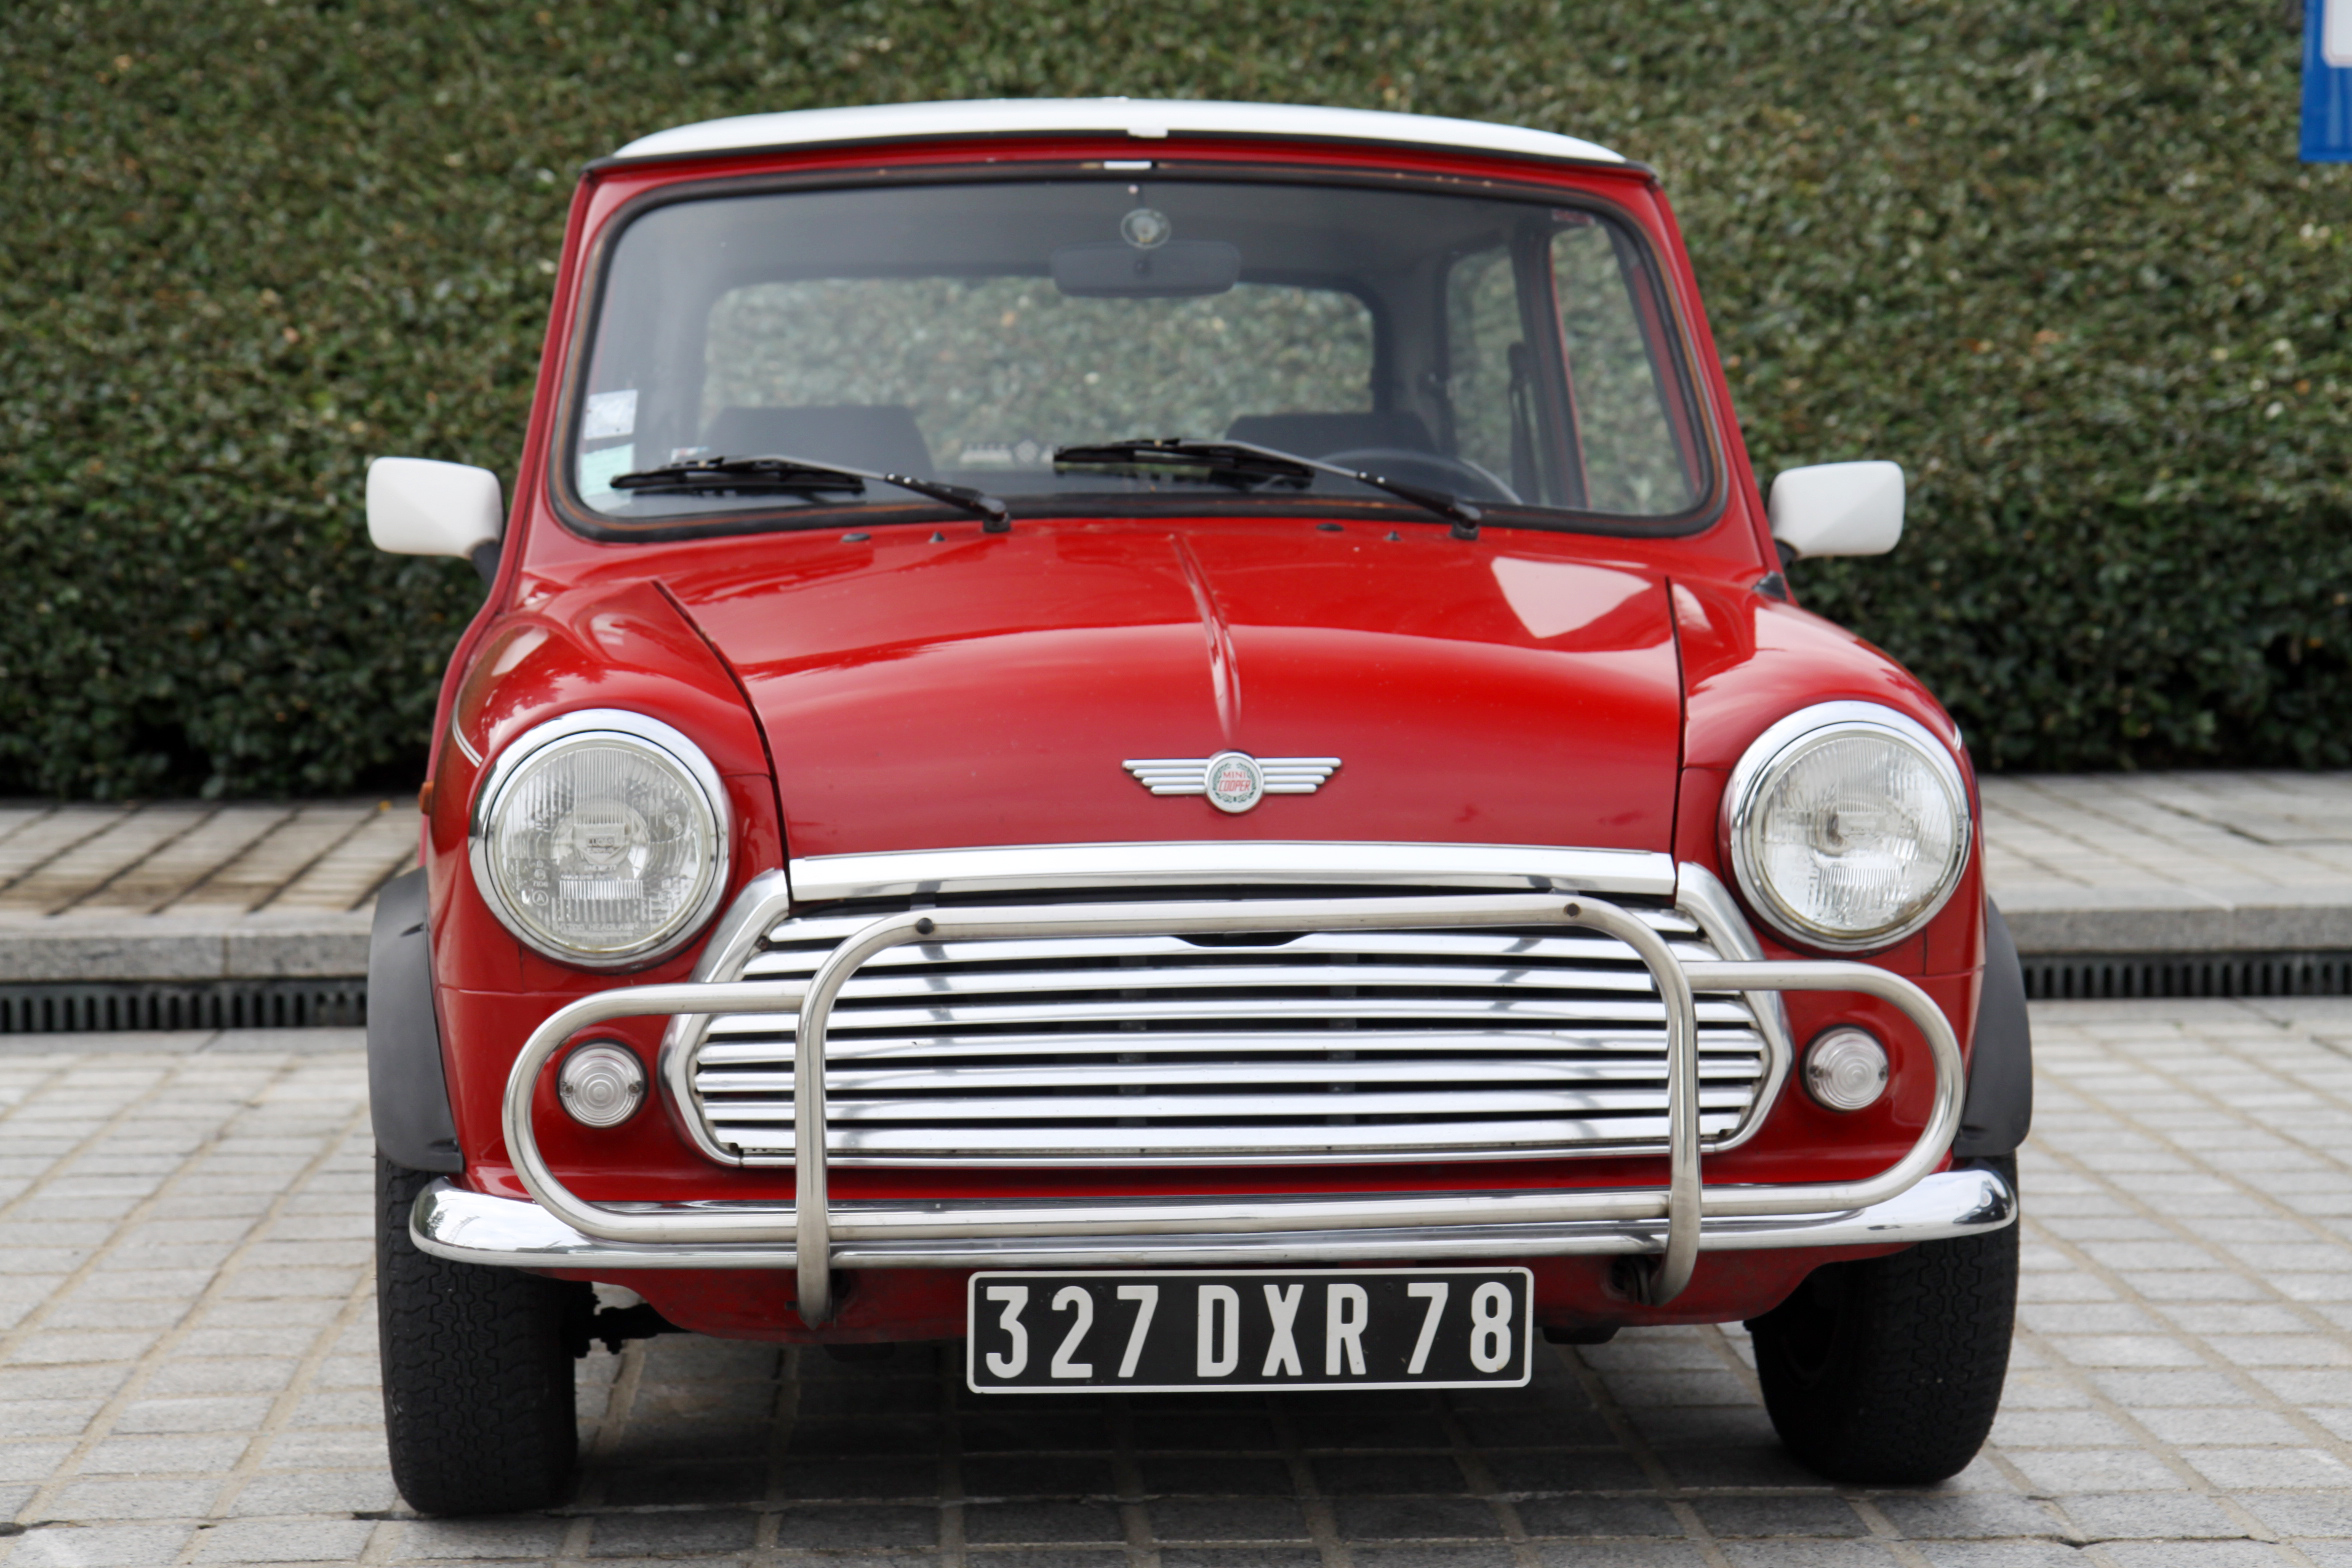 mini cooper 1300 de 1991 vs mini cooper de 2011 little big car. Black Bedroom Furniture Sets. Home Design Ideas